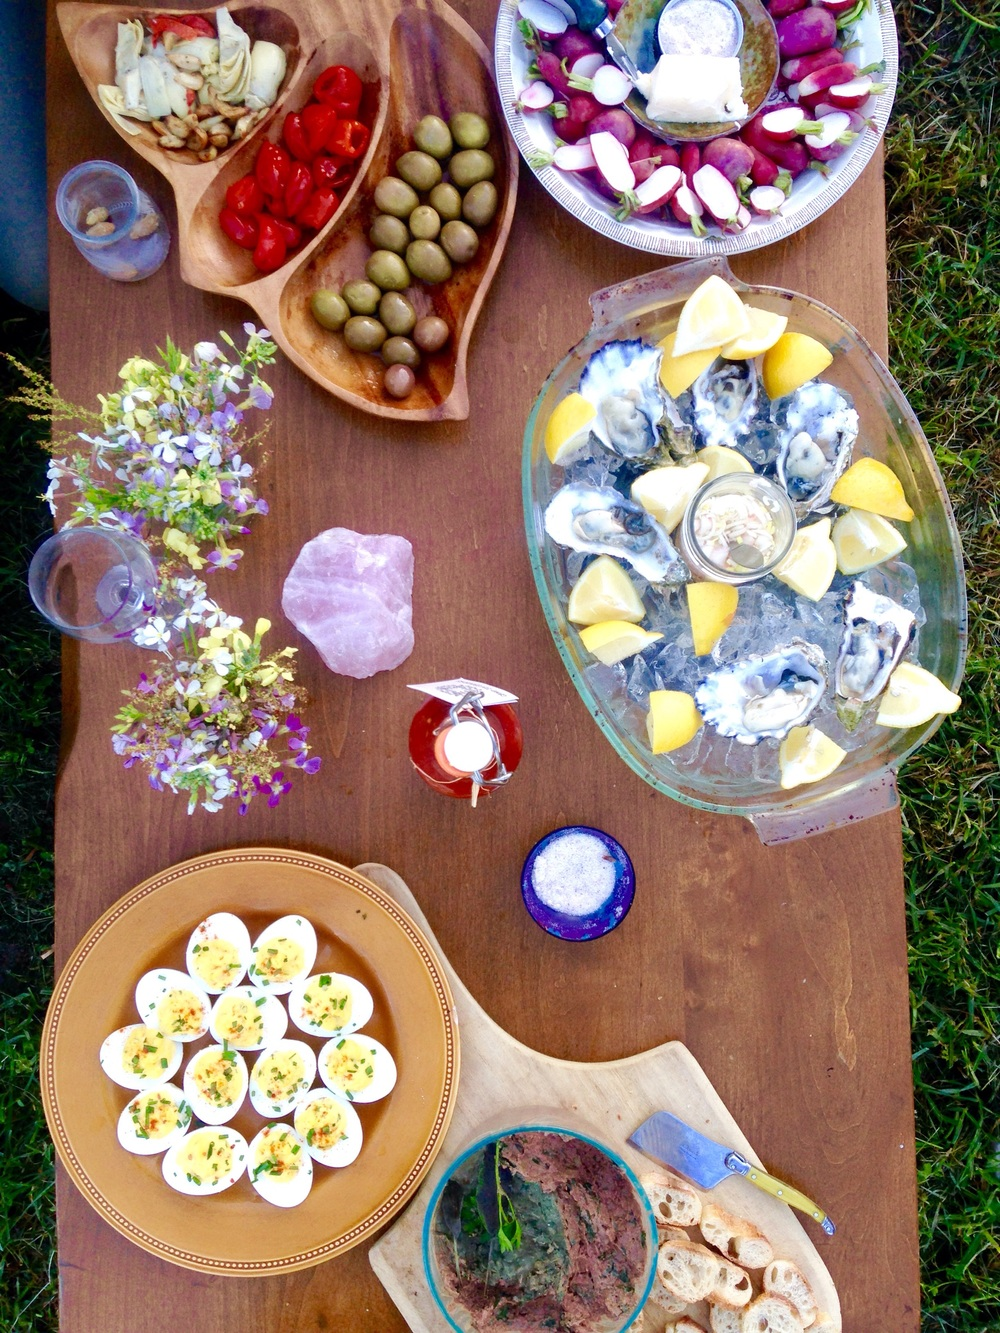 The Spread at Emily's Birthday Bash